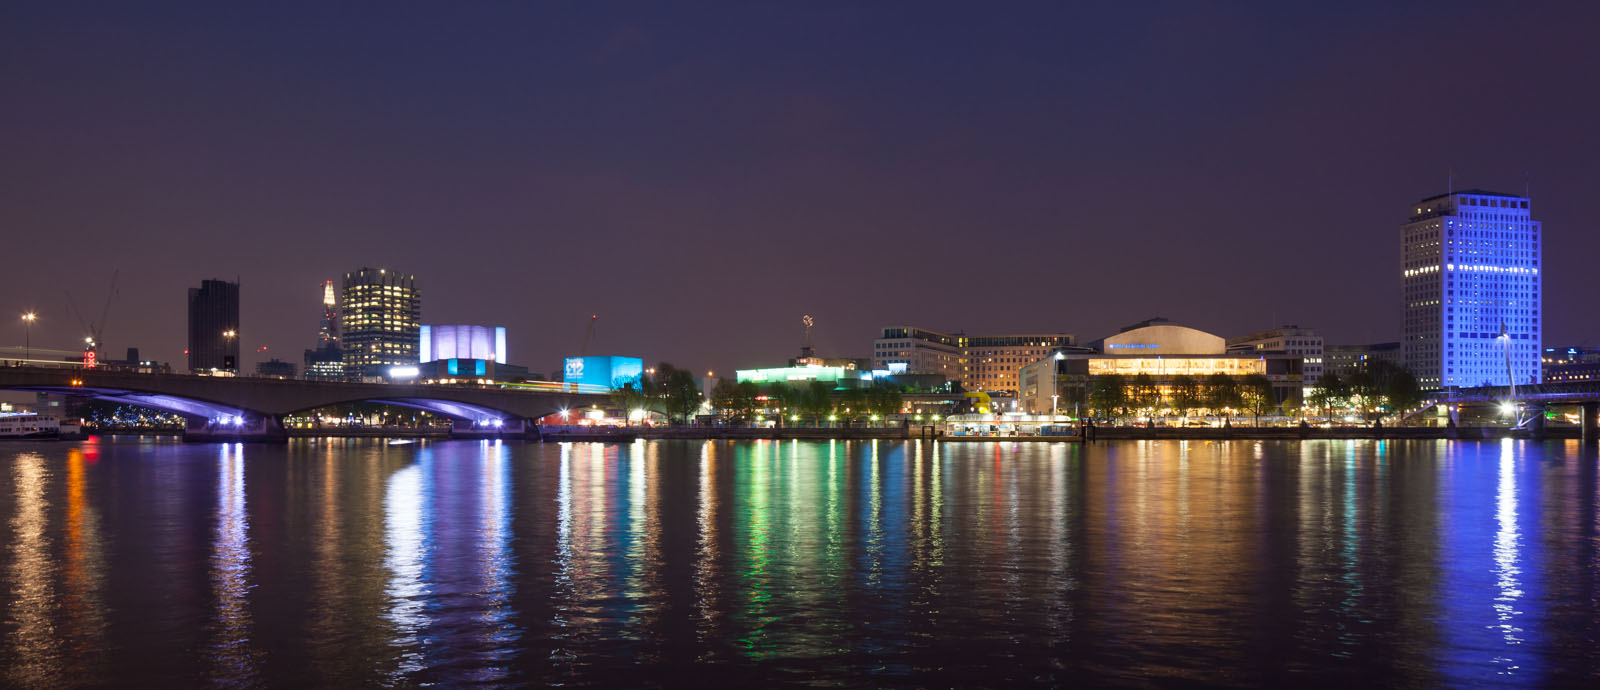 Southbank Center and Thames at night